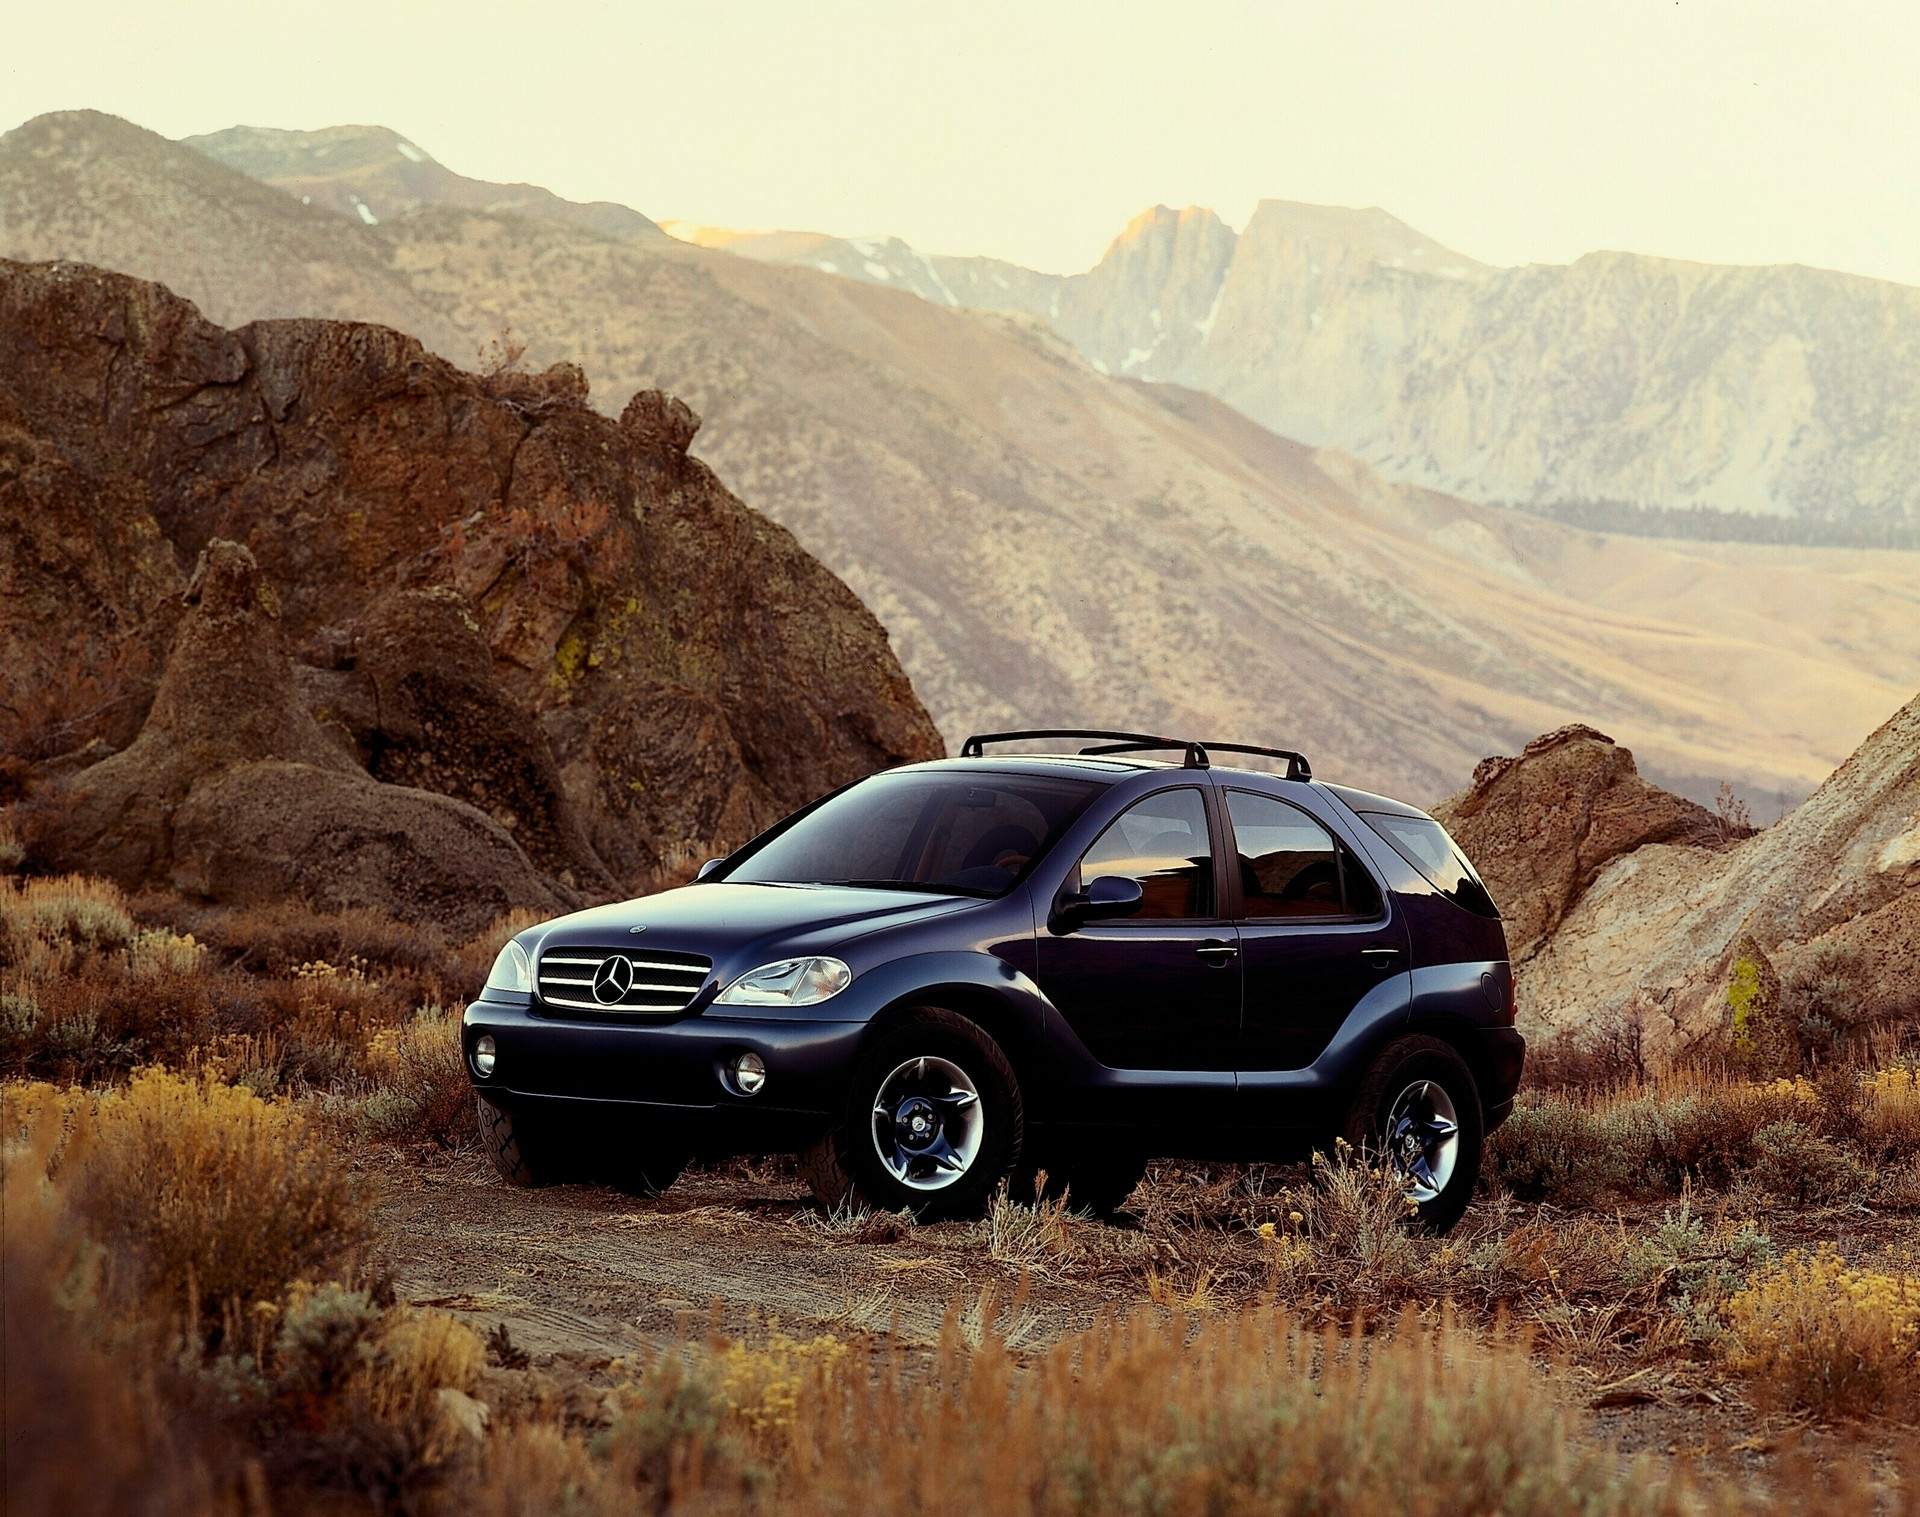 Mercedes AAVision concept SUV